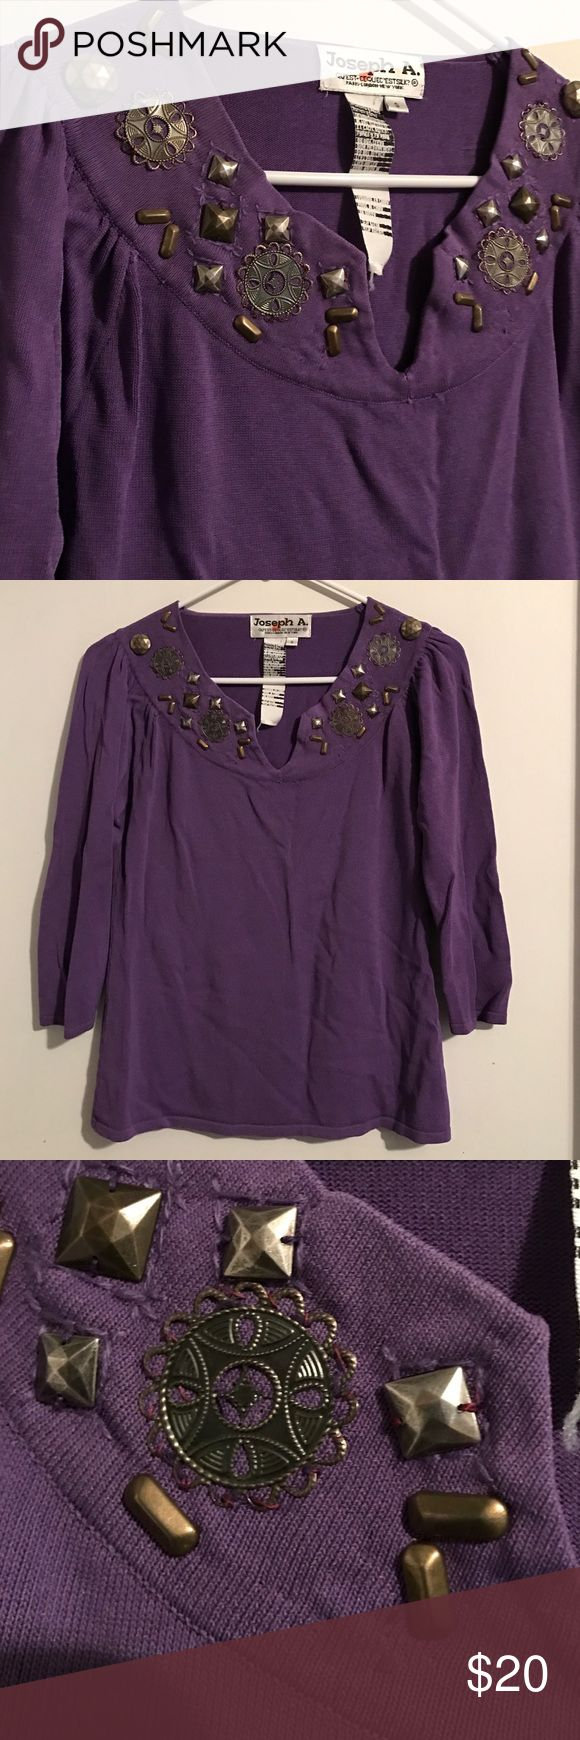 Unique Purple VINTAGE boho western embellished top Super unique vintage top in excellent condition fearures all over bronze embellishment along the neckline. I picture these adorable with a pair of jean shorts and cowboy boots Tops Blouses